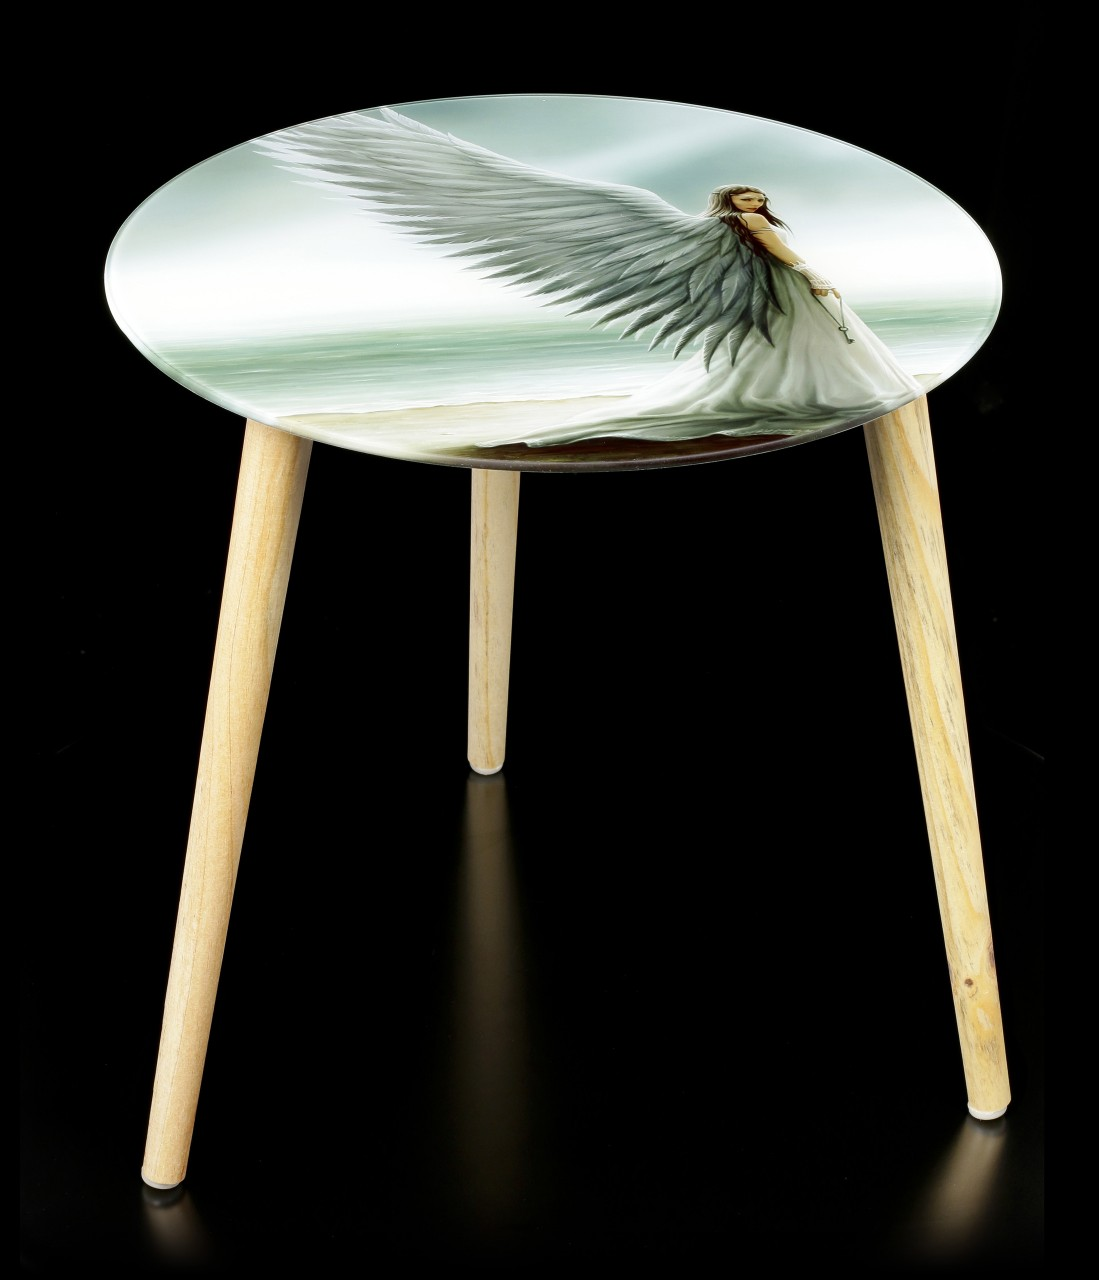 Side Table with Angel - Spirit Guide